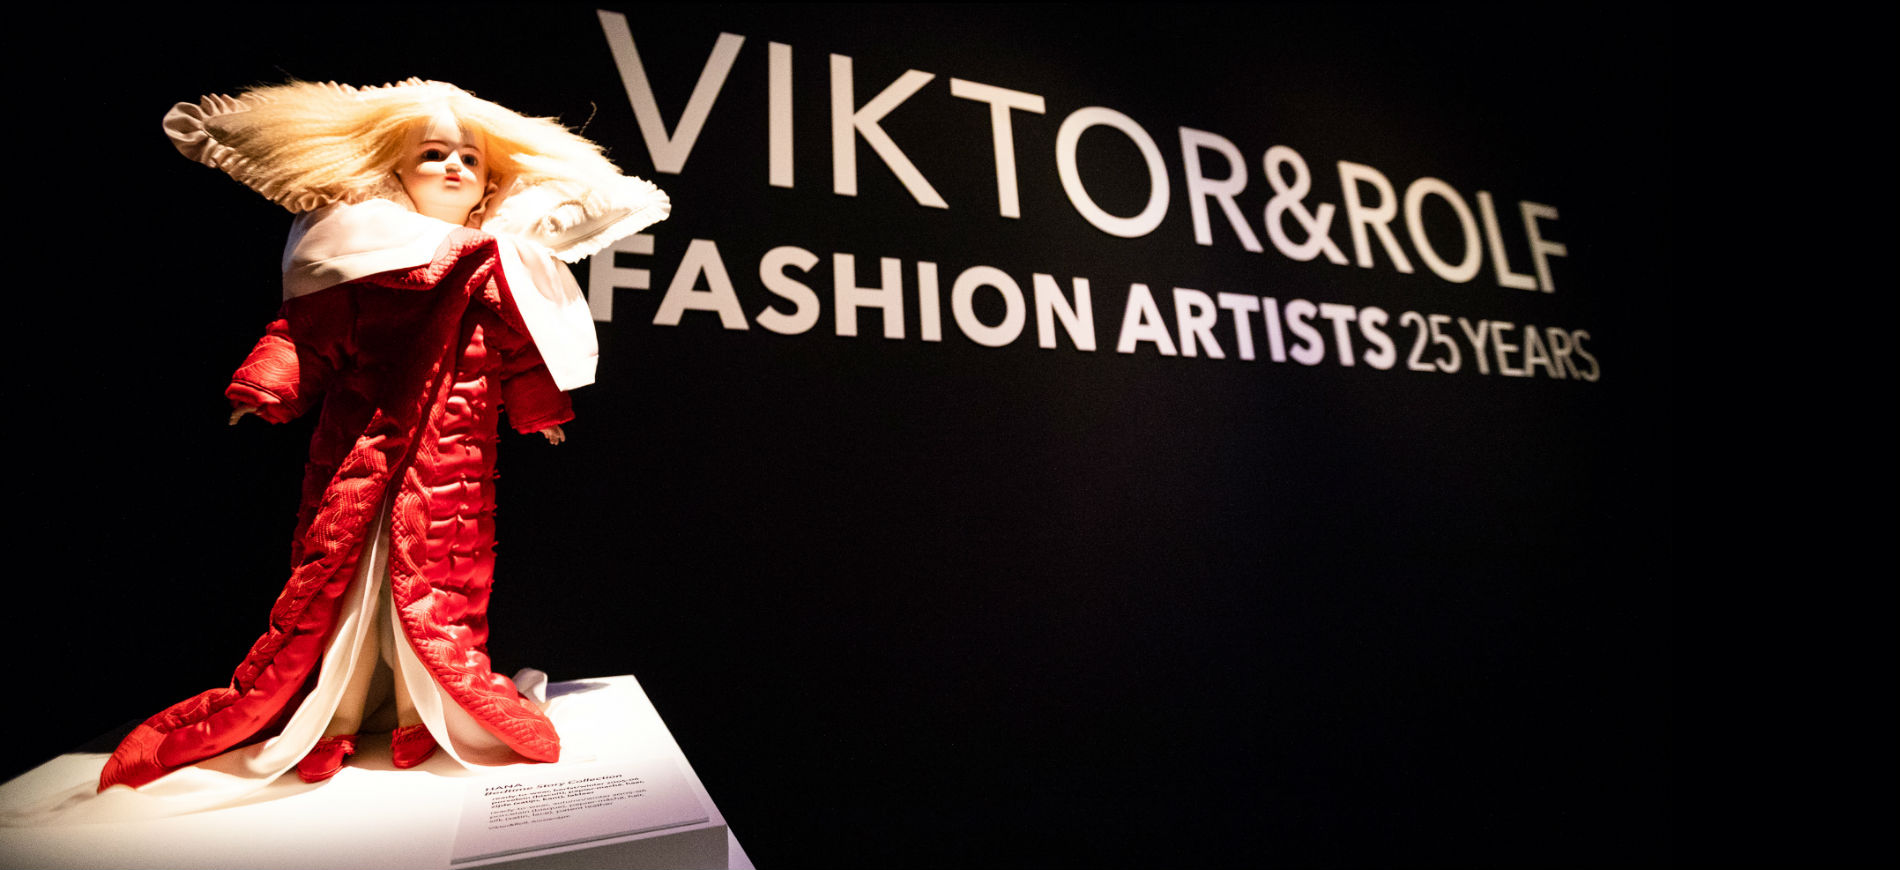 Allestimento mostra Viktor&Rolf: Fashion Artists 25 Years